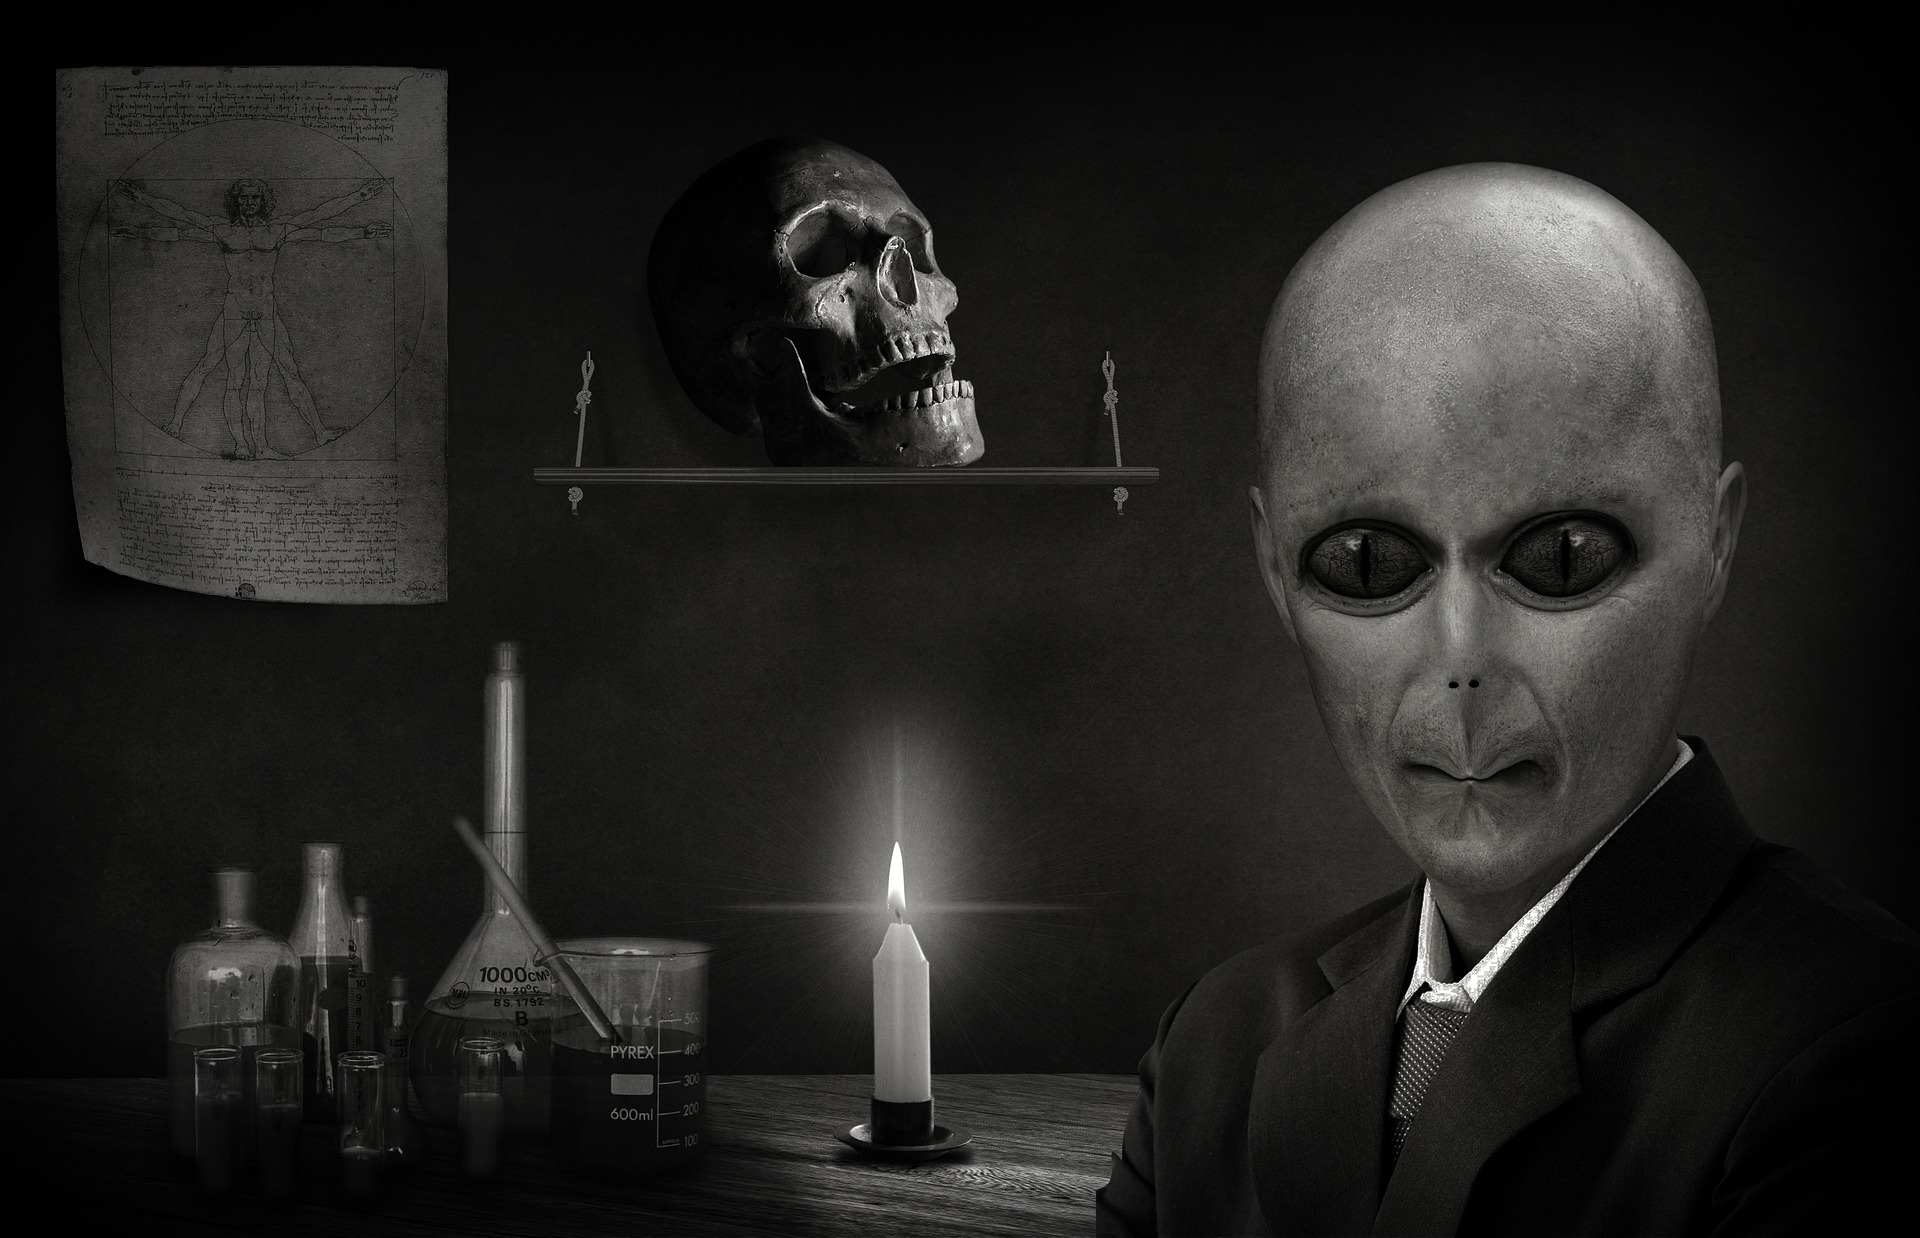 Aliens and Conspiracy Theories